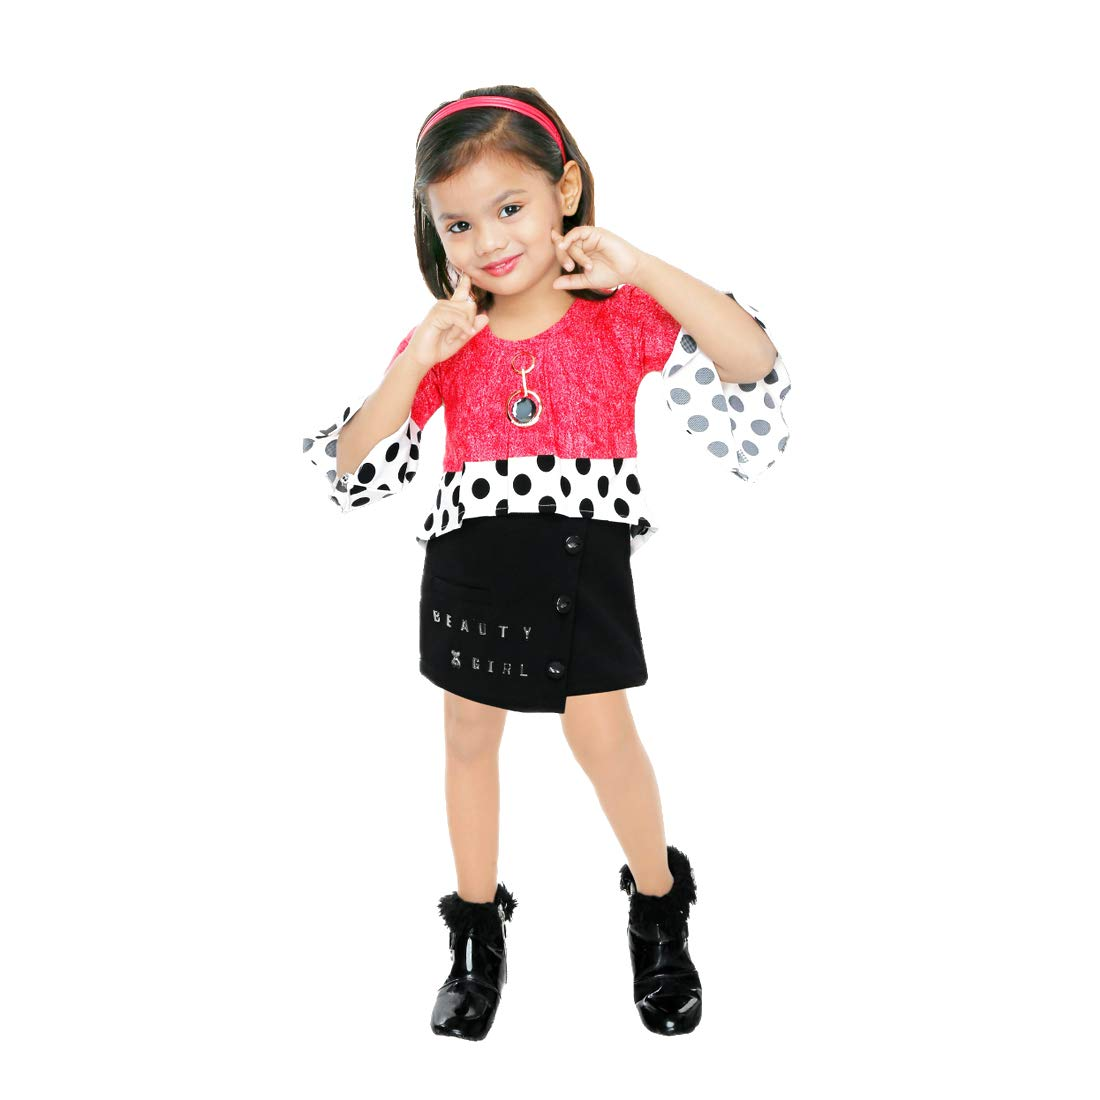 Kids Mandi Floral Kid Girls Dresses, Round Neck Sleeveless Frock for Summer Wear, Casual Wear, Party Wear